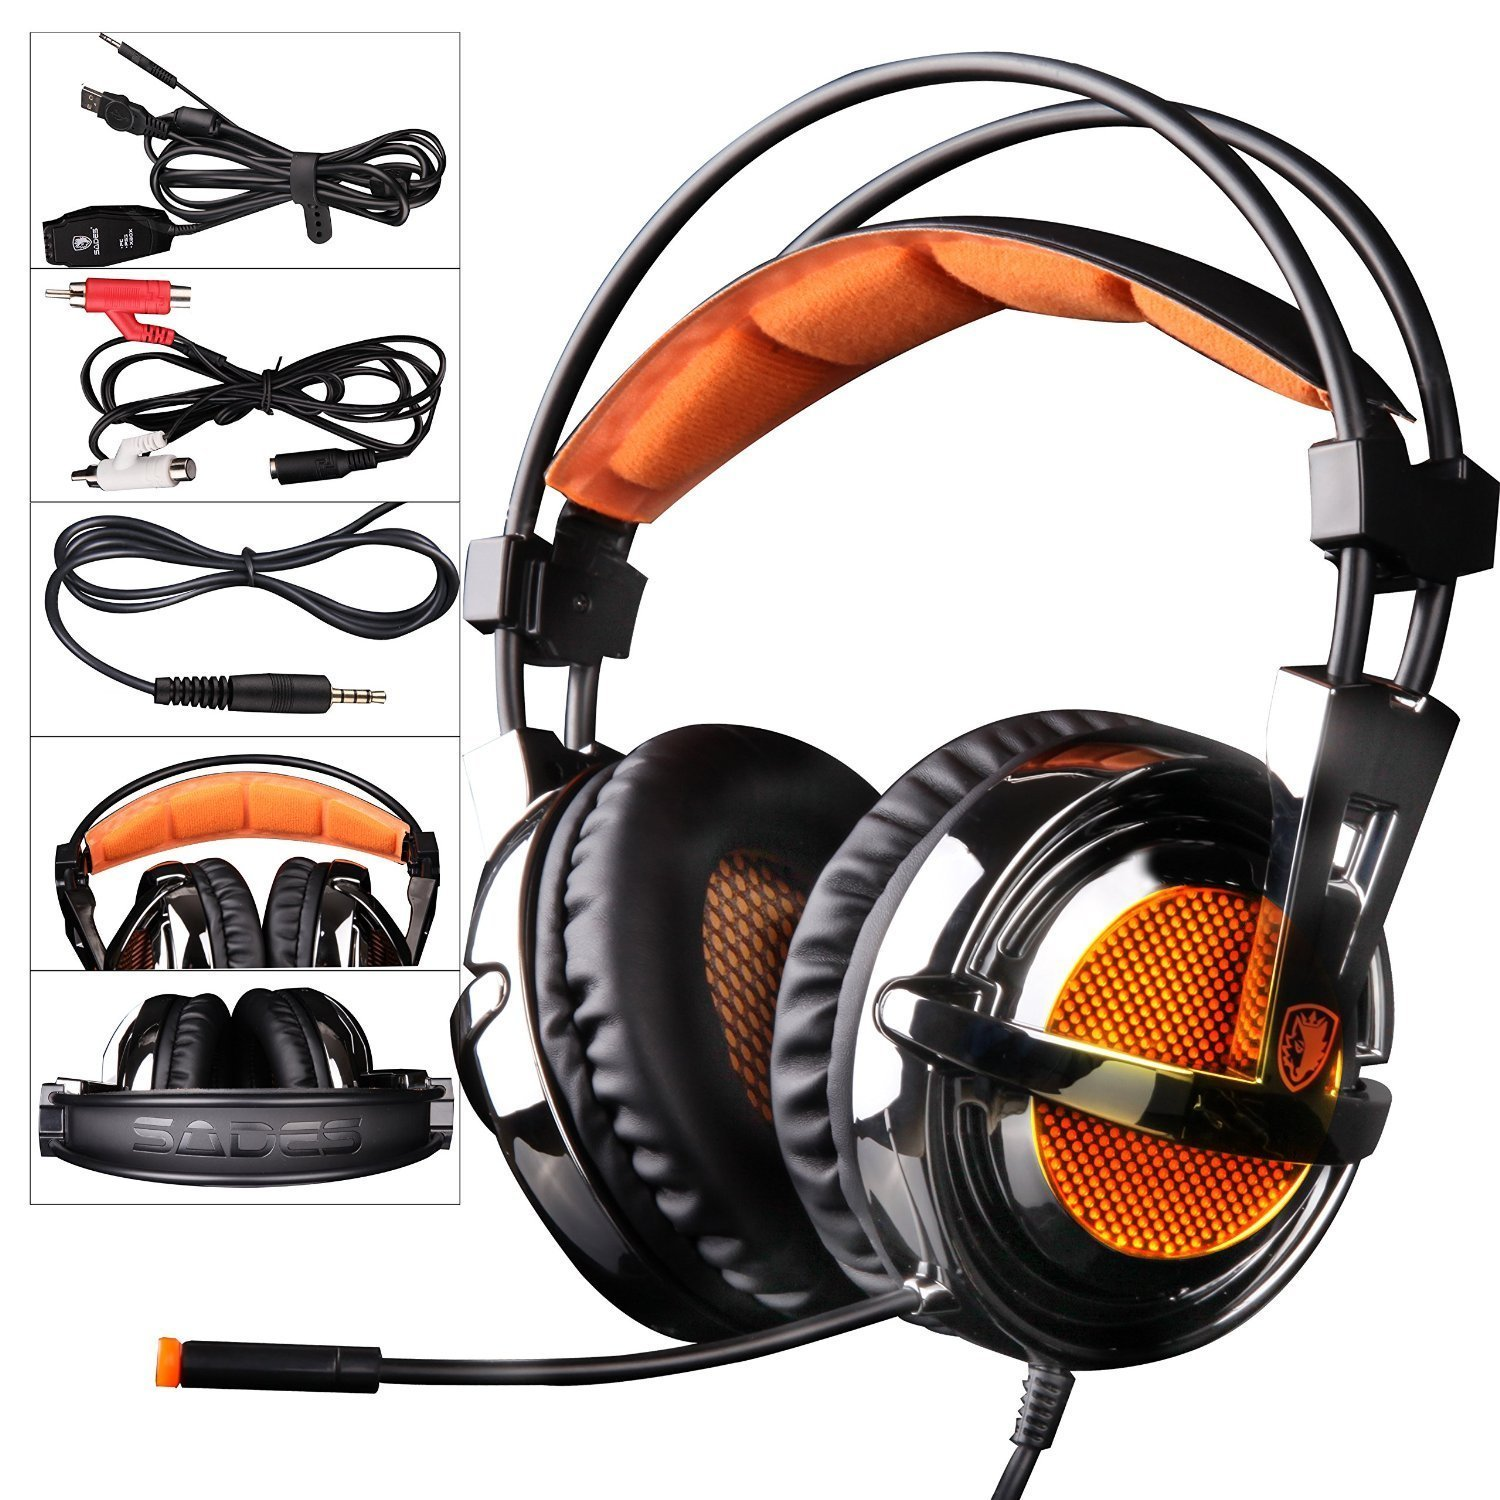 GW SADES SA928 Pro Surround Sound Stereo Wired PC Gaming Headset Over-the-Ear Headband Headphones with Microphone volume control for XBOX/PS3/PC/Mobile Phone/iphone/ipad/Music(Black&Oriange)